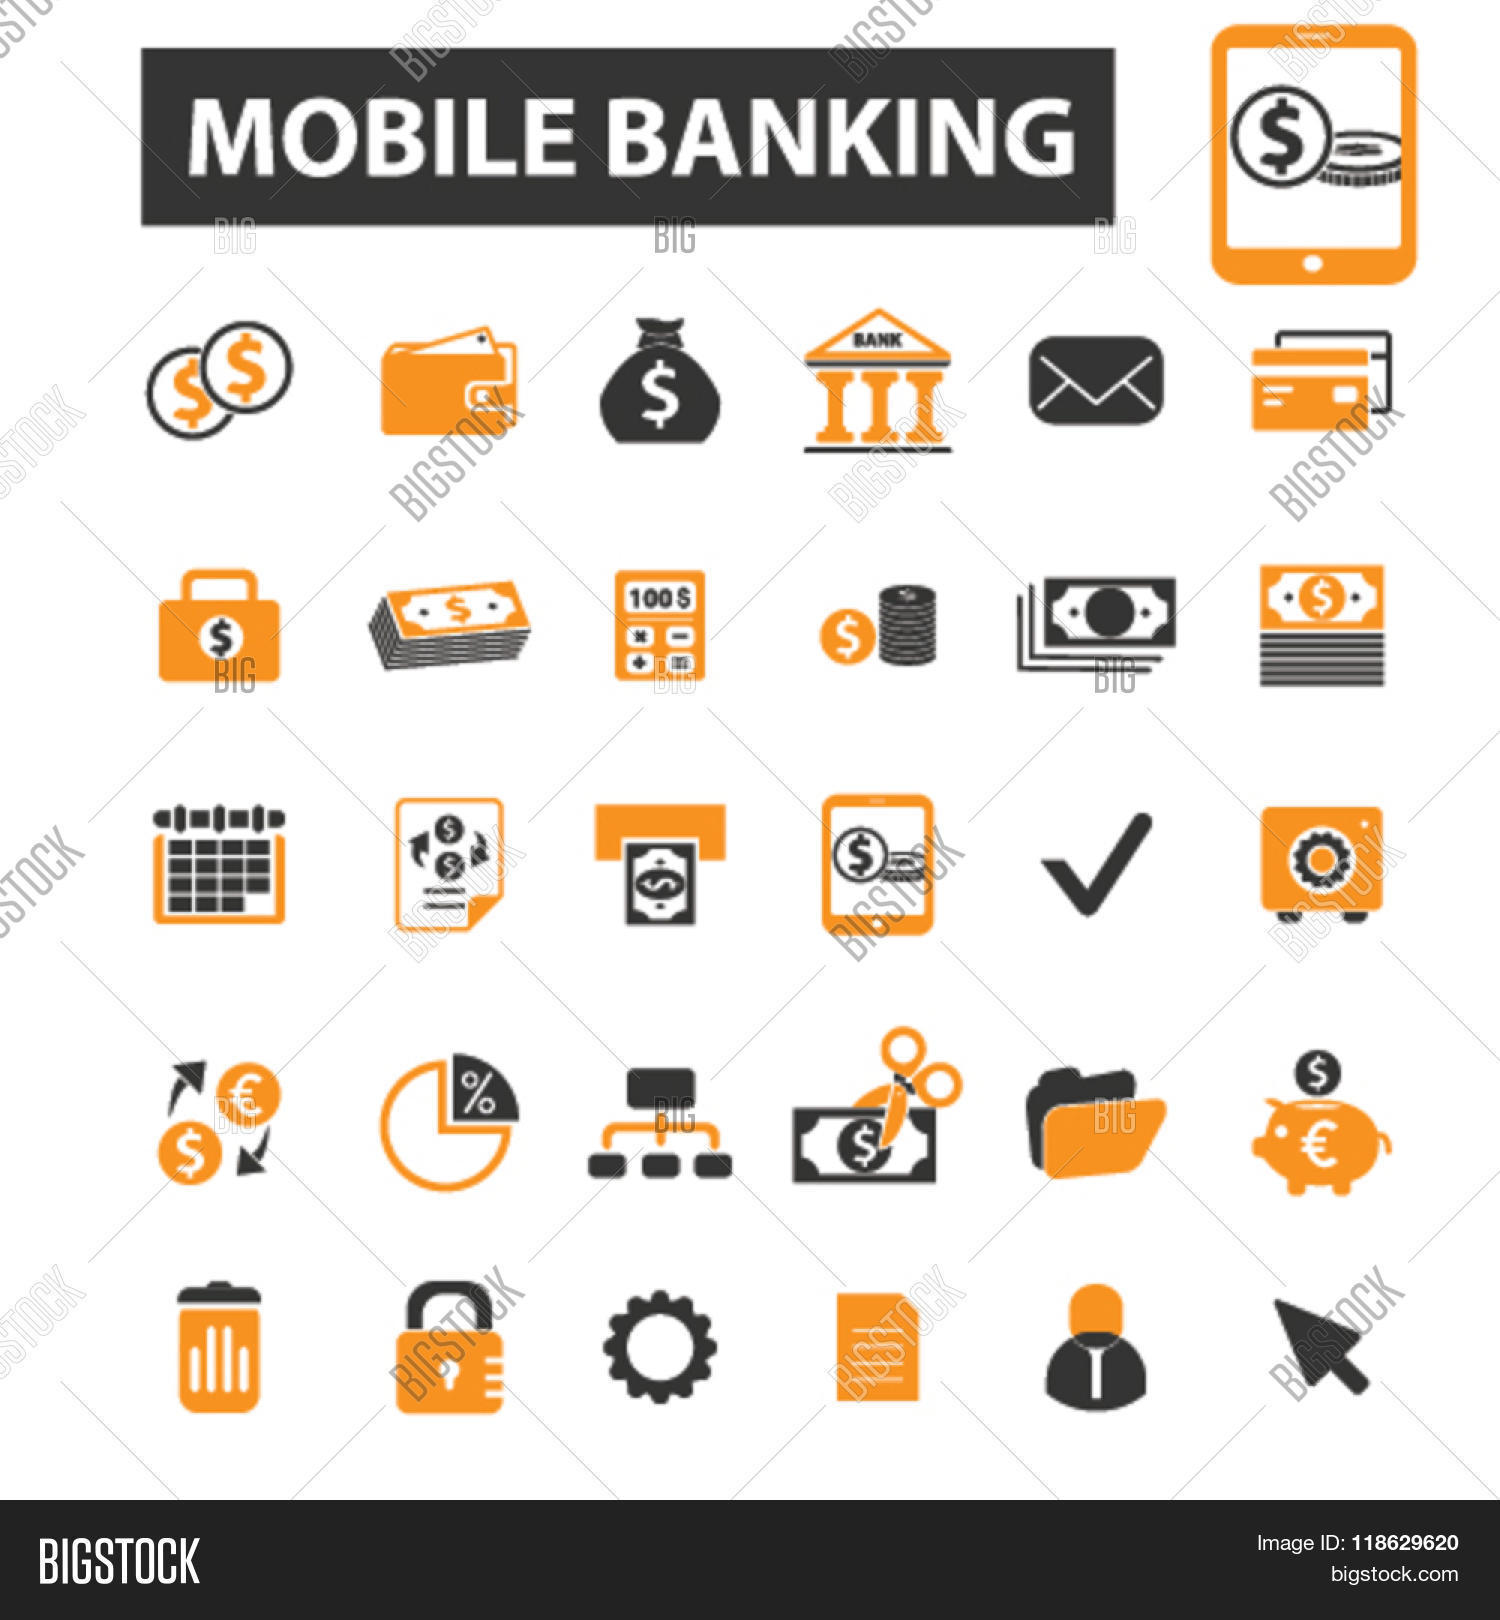 Mobile Banking Icons, Mobile Vector & Photo | Bigstock